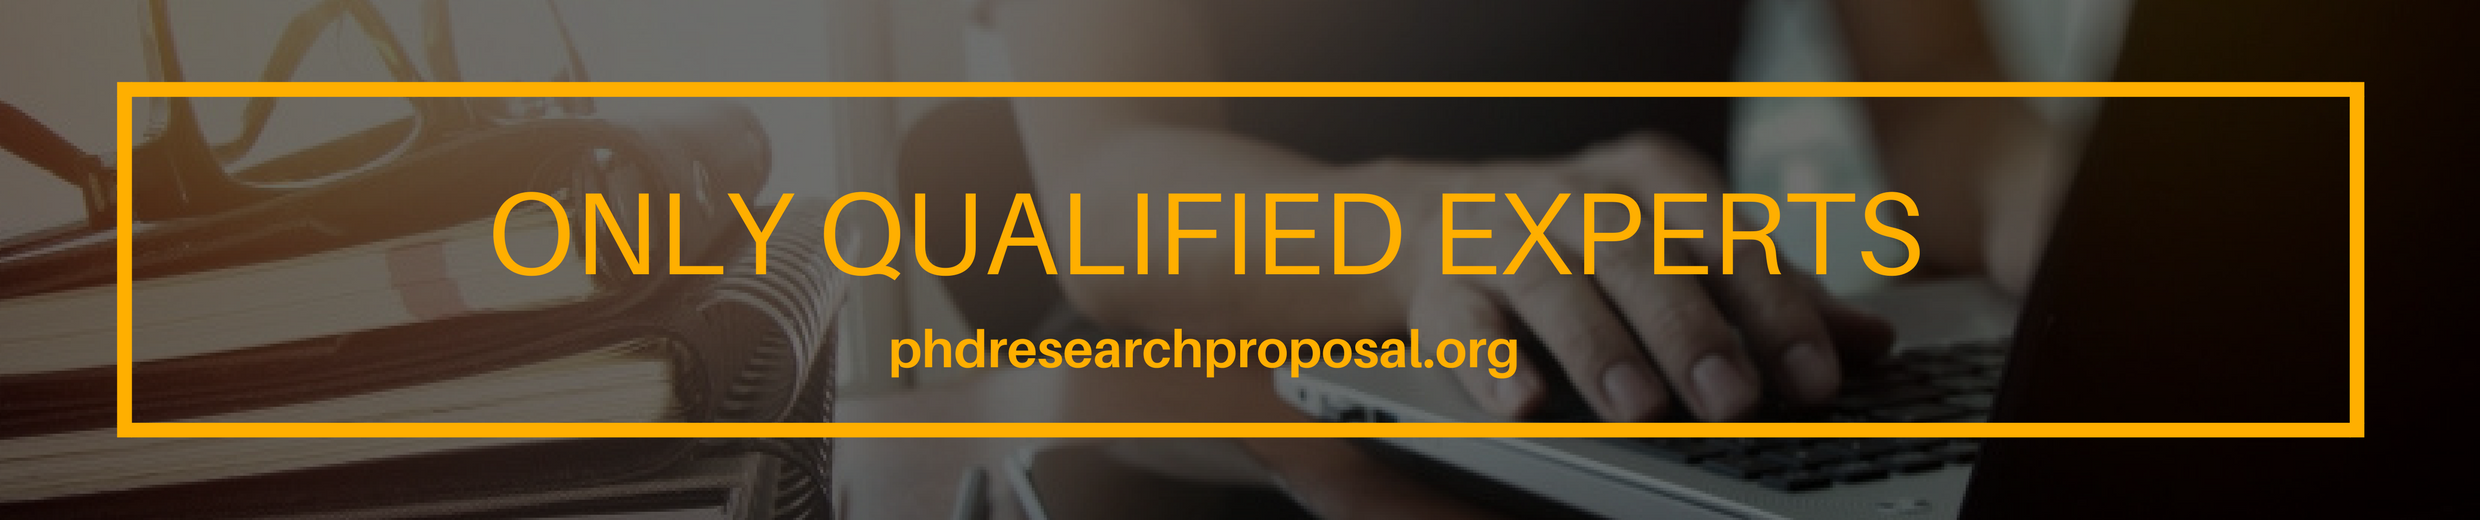 phd research proposal writers online